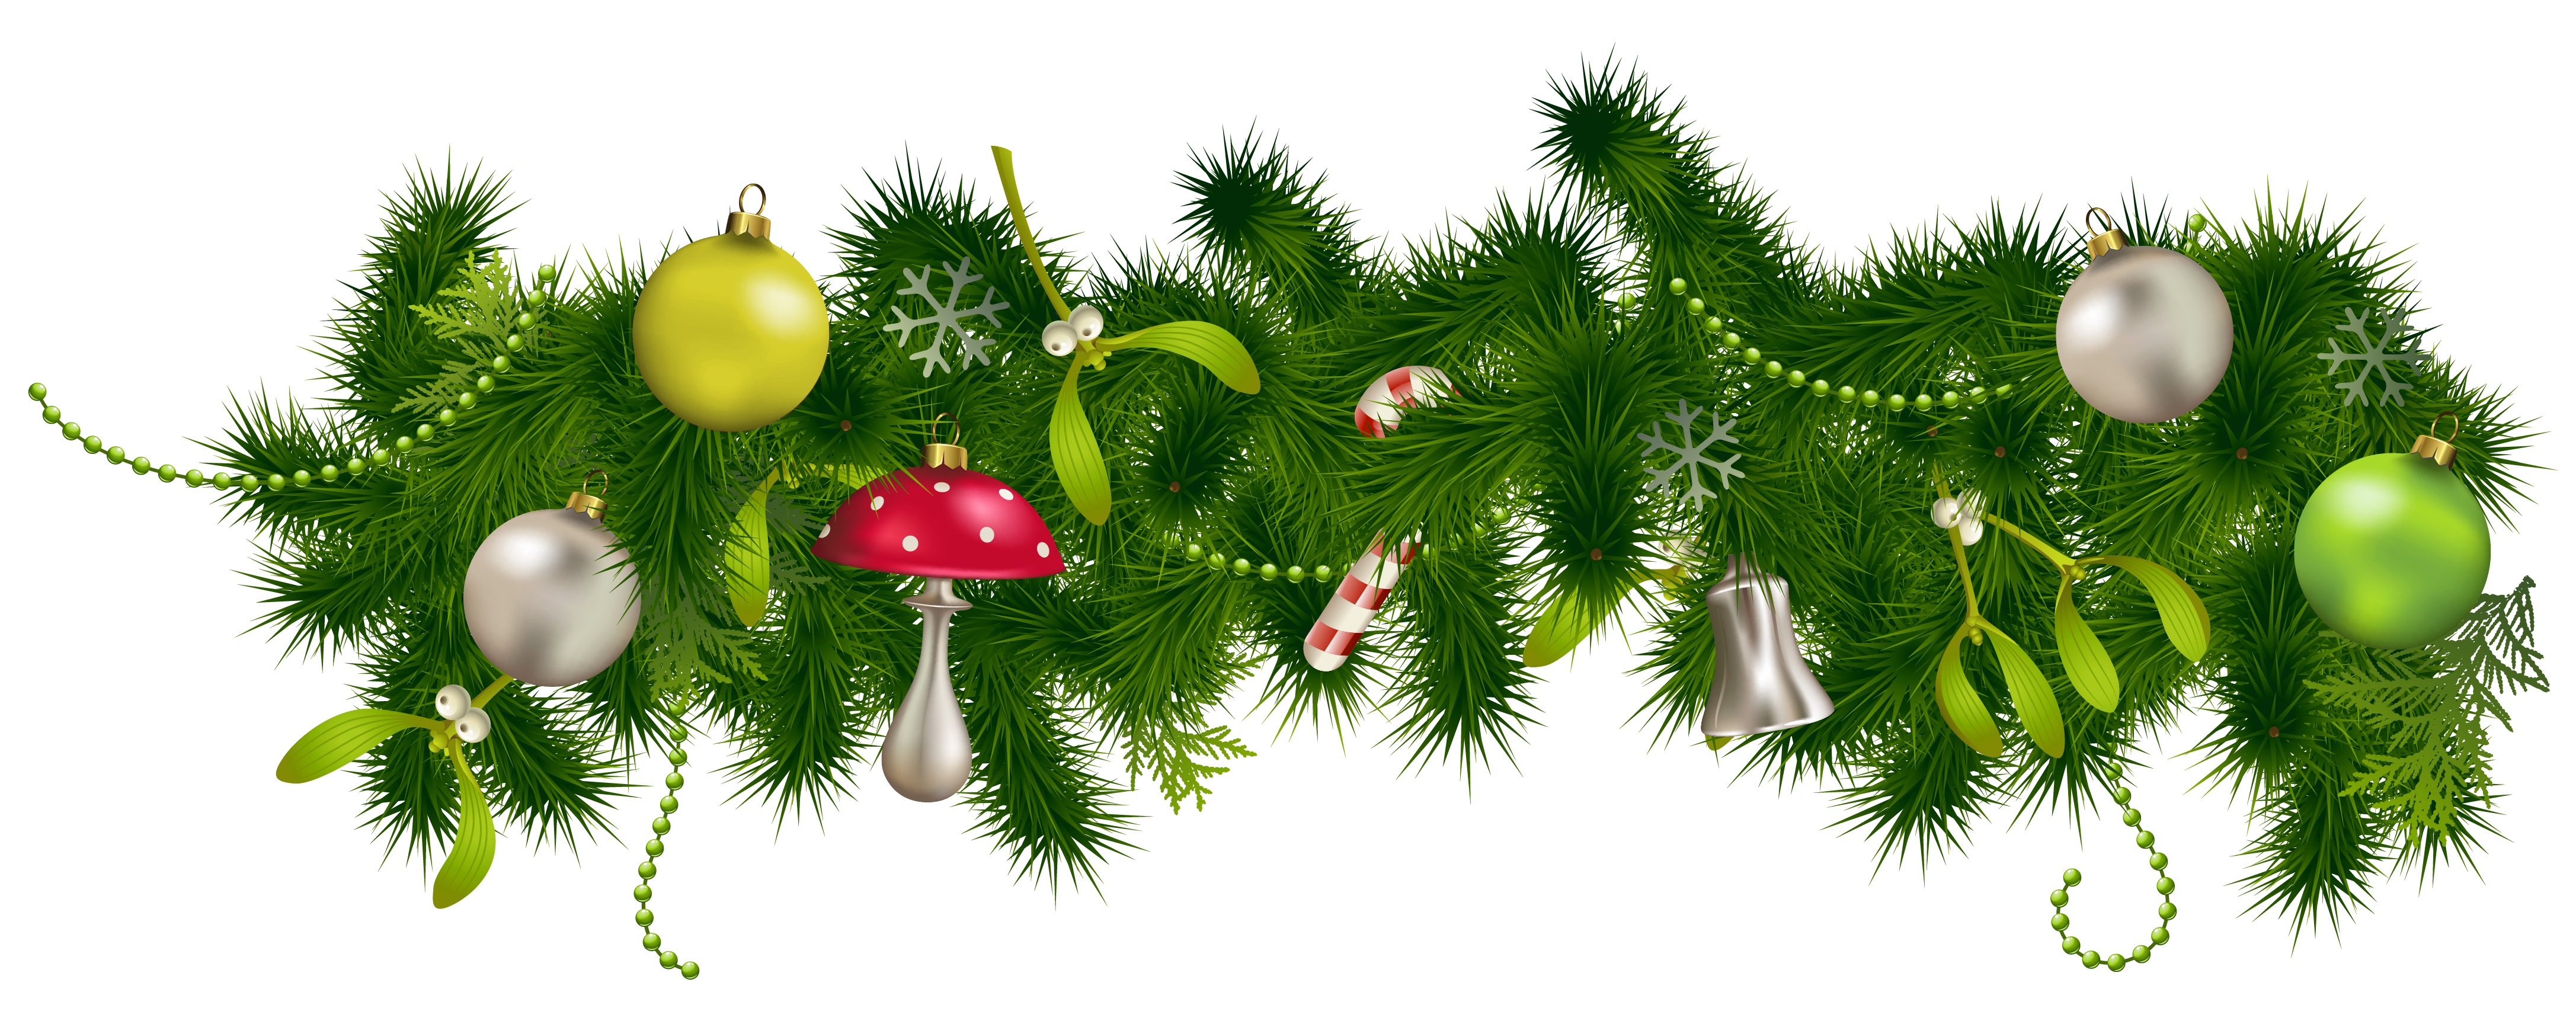 Christmas Pine Transparent Background